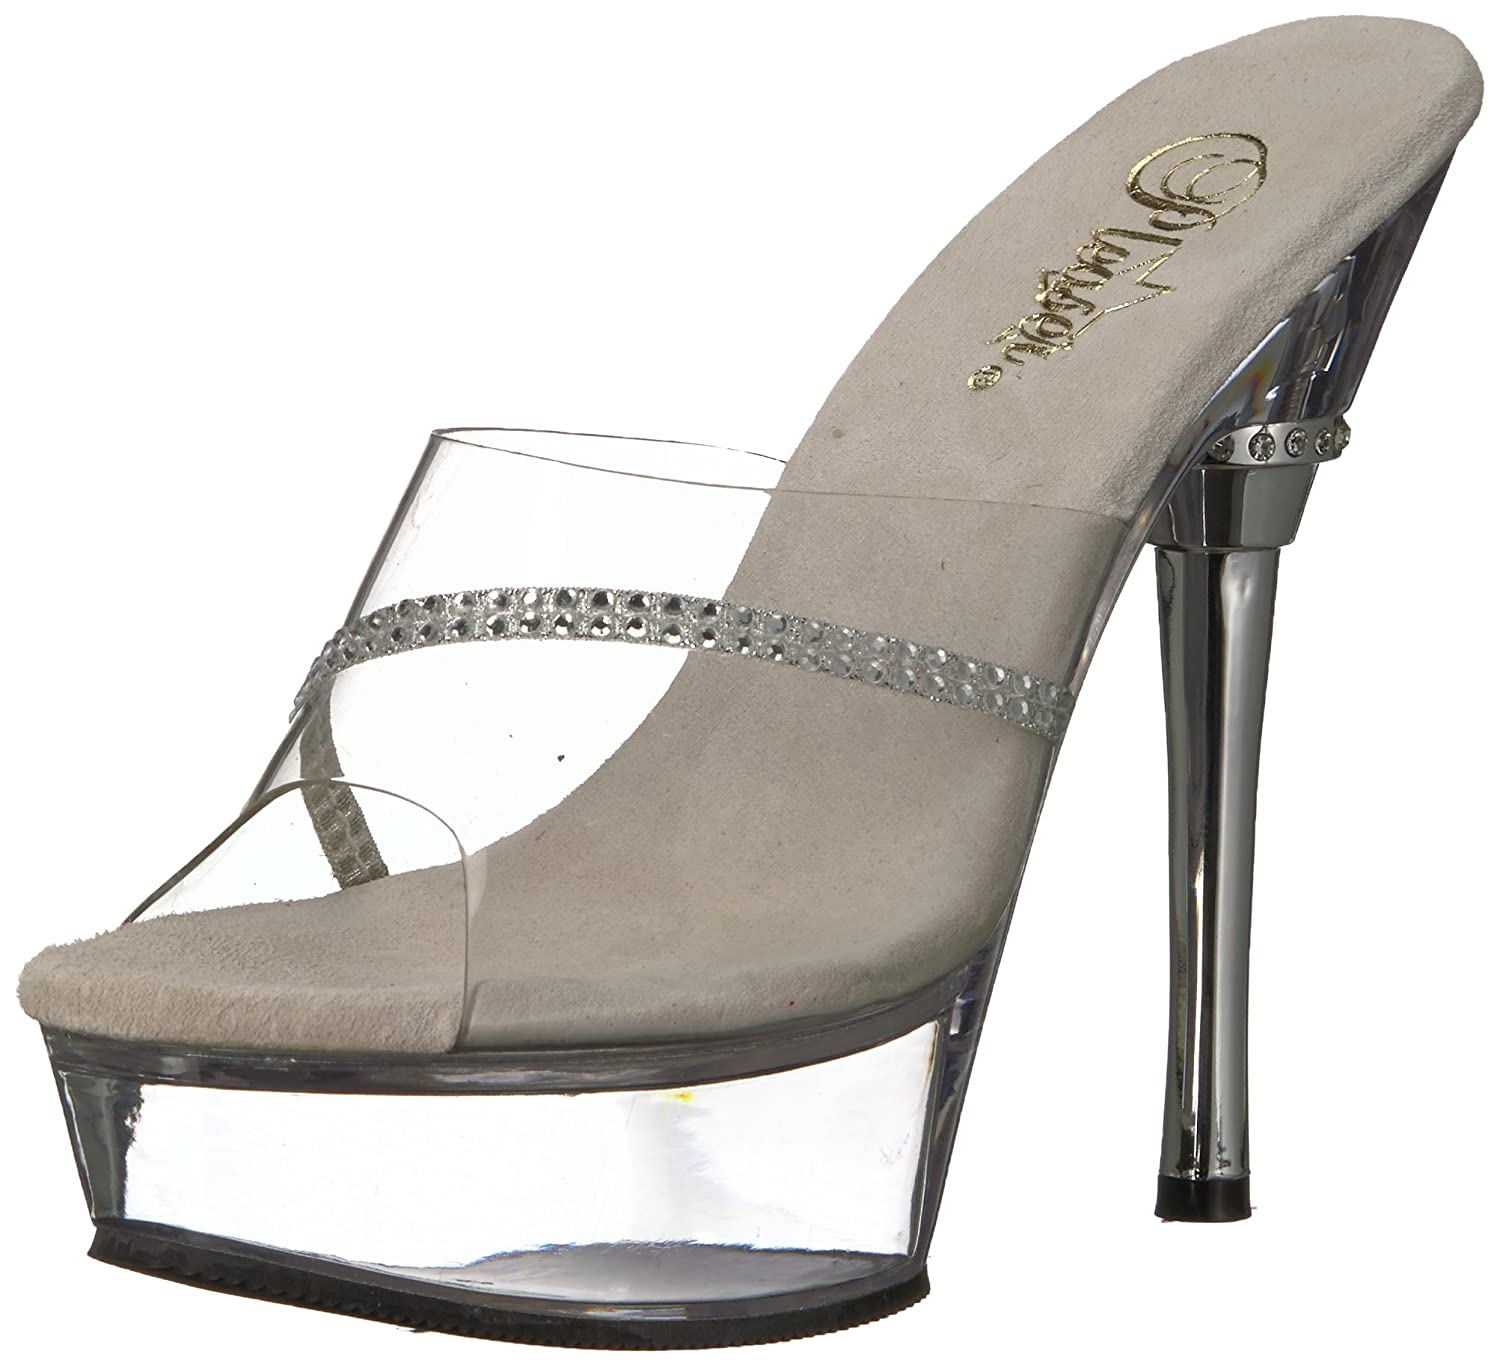 Pleaser Women's DELIGHT-602/C/M Platform Sandal B0013JDILK 8 B(M) US|Clear